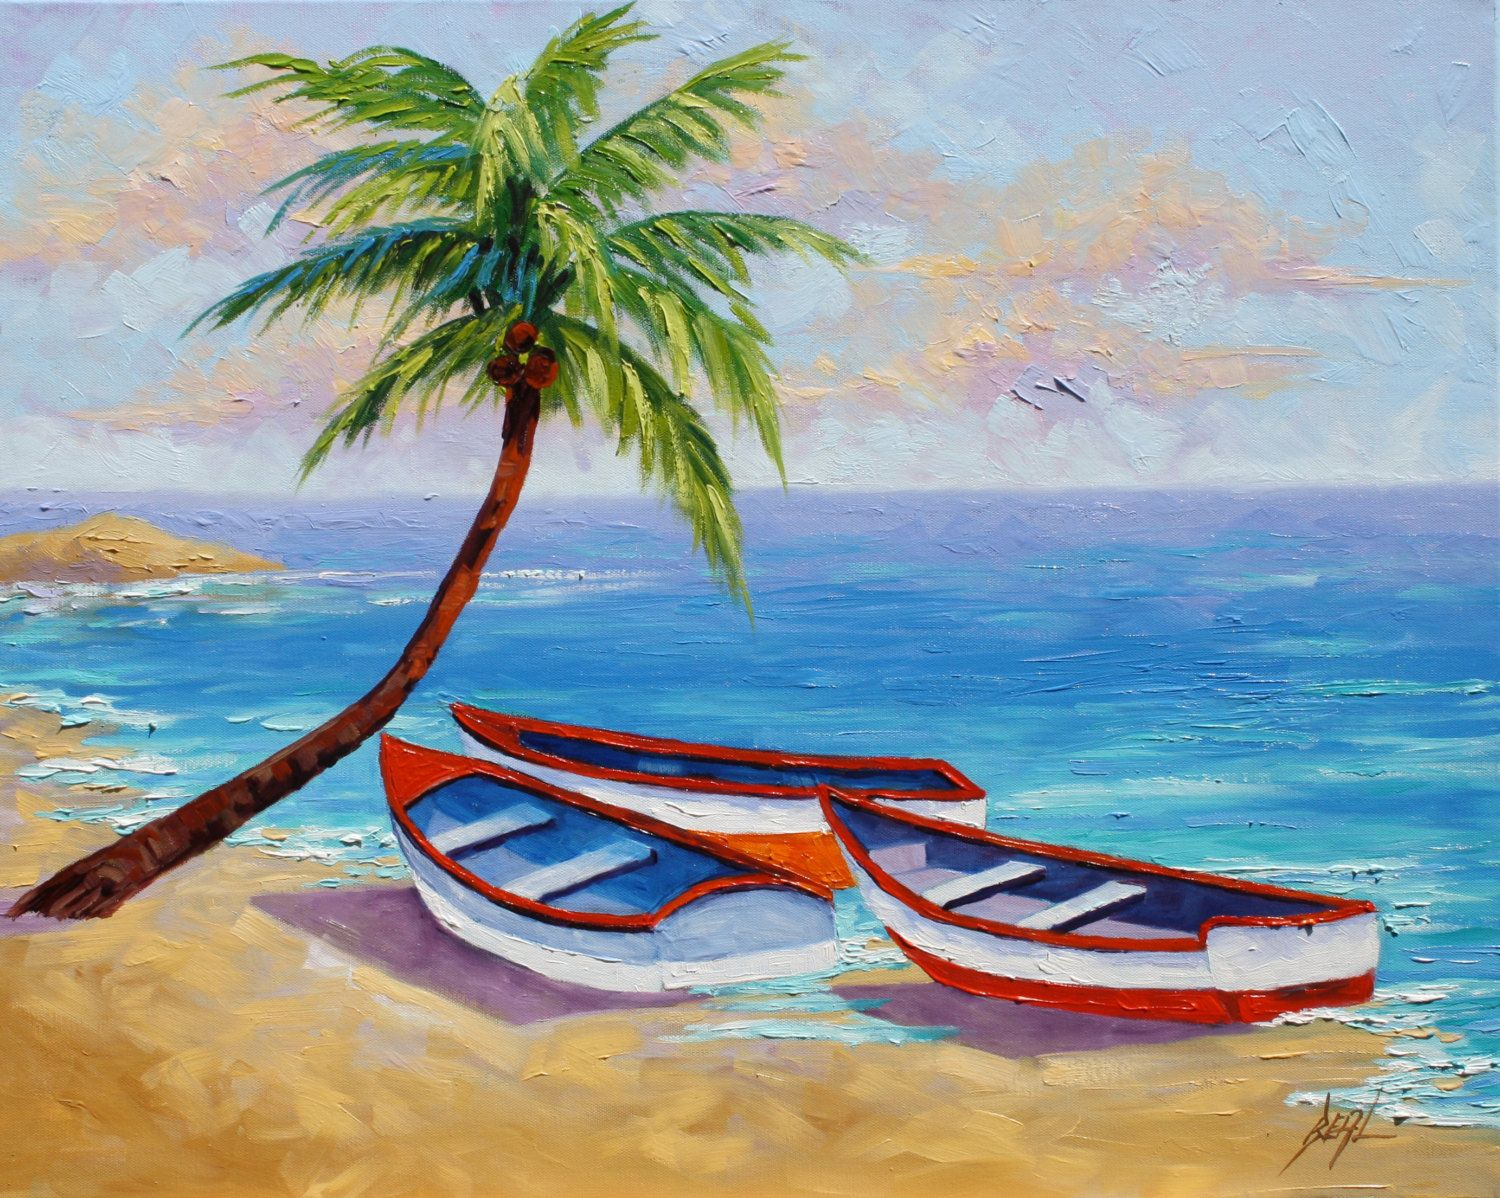 Boats Tropical Oil Painting Signed Canvas Landscape Art By Rebecca Beal Landscape Drawings Landscape Art Easy Landscape Paintings